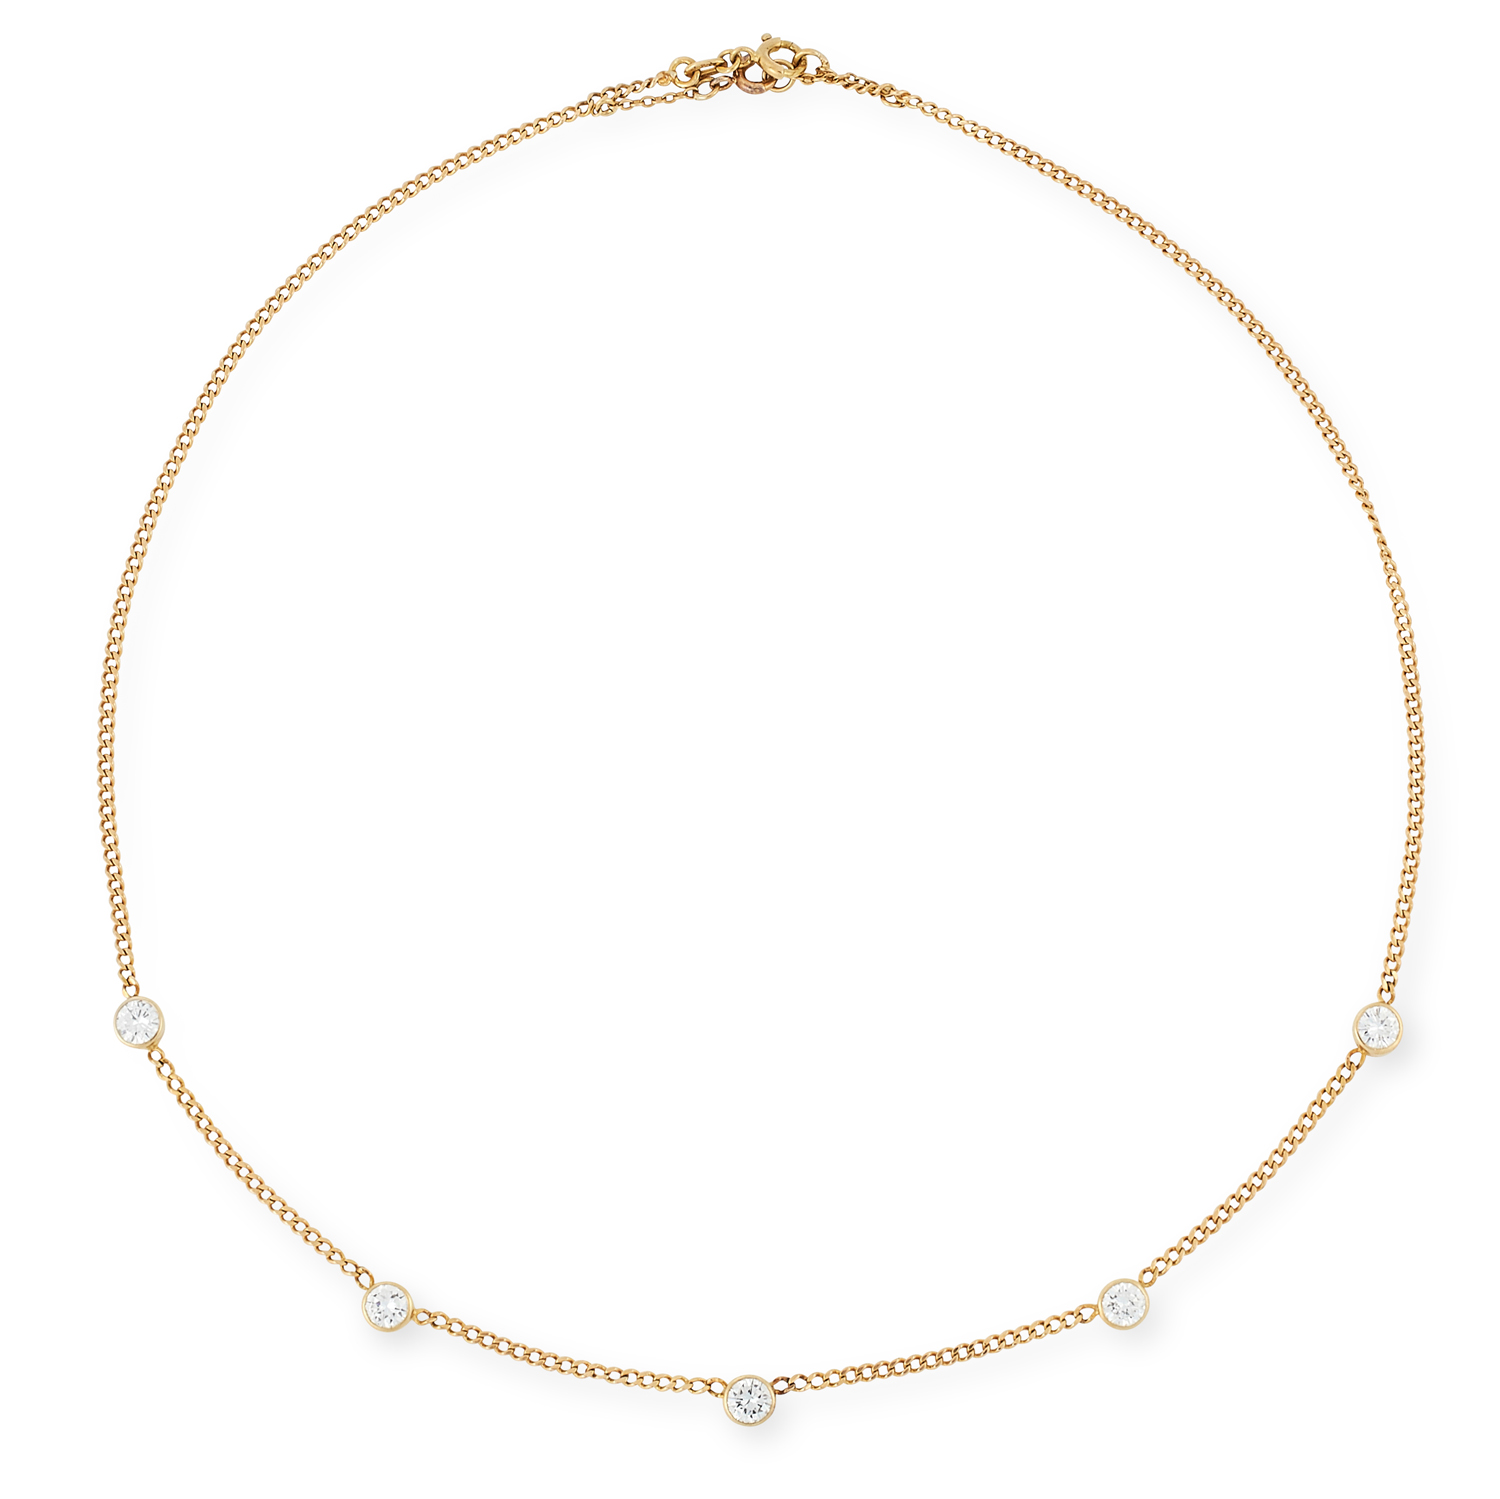 A DIAMOND NECKLACE, 1977 in the manner of Yard of Diamonds, comprising a chain set with five round